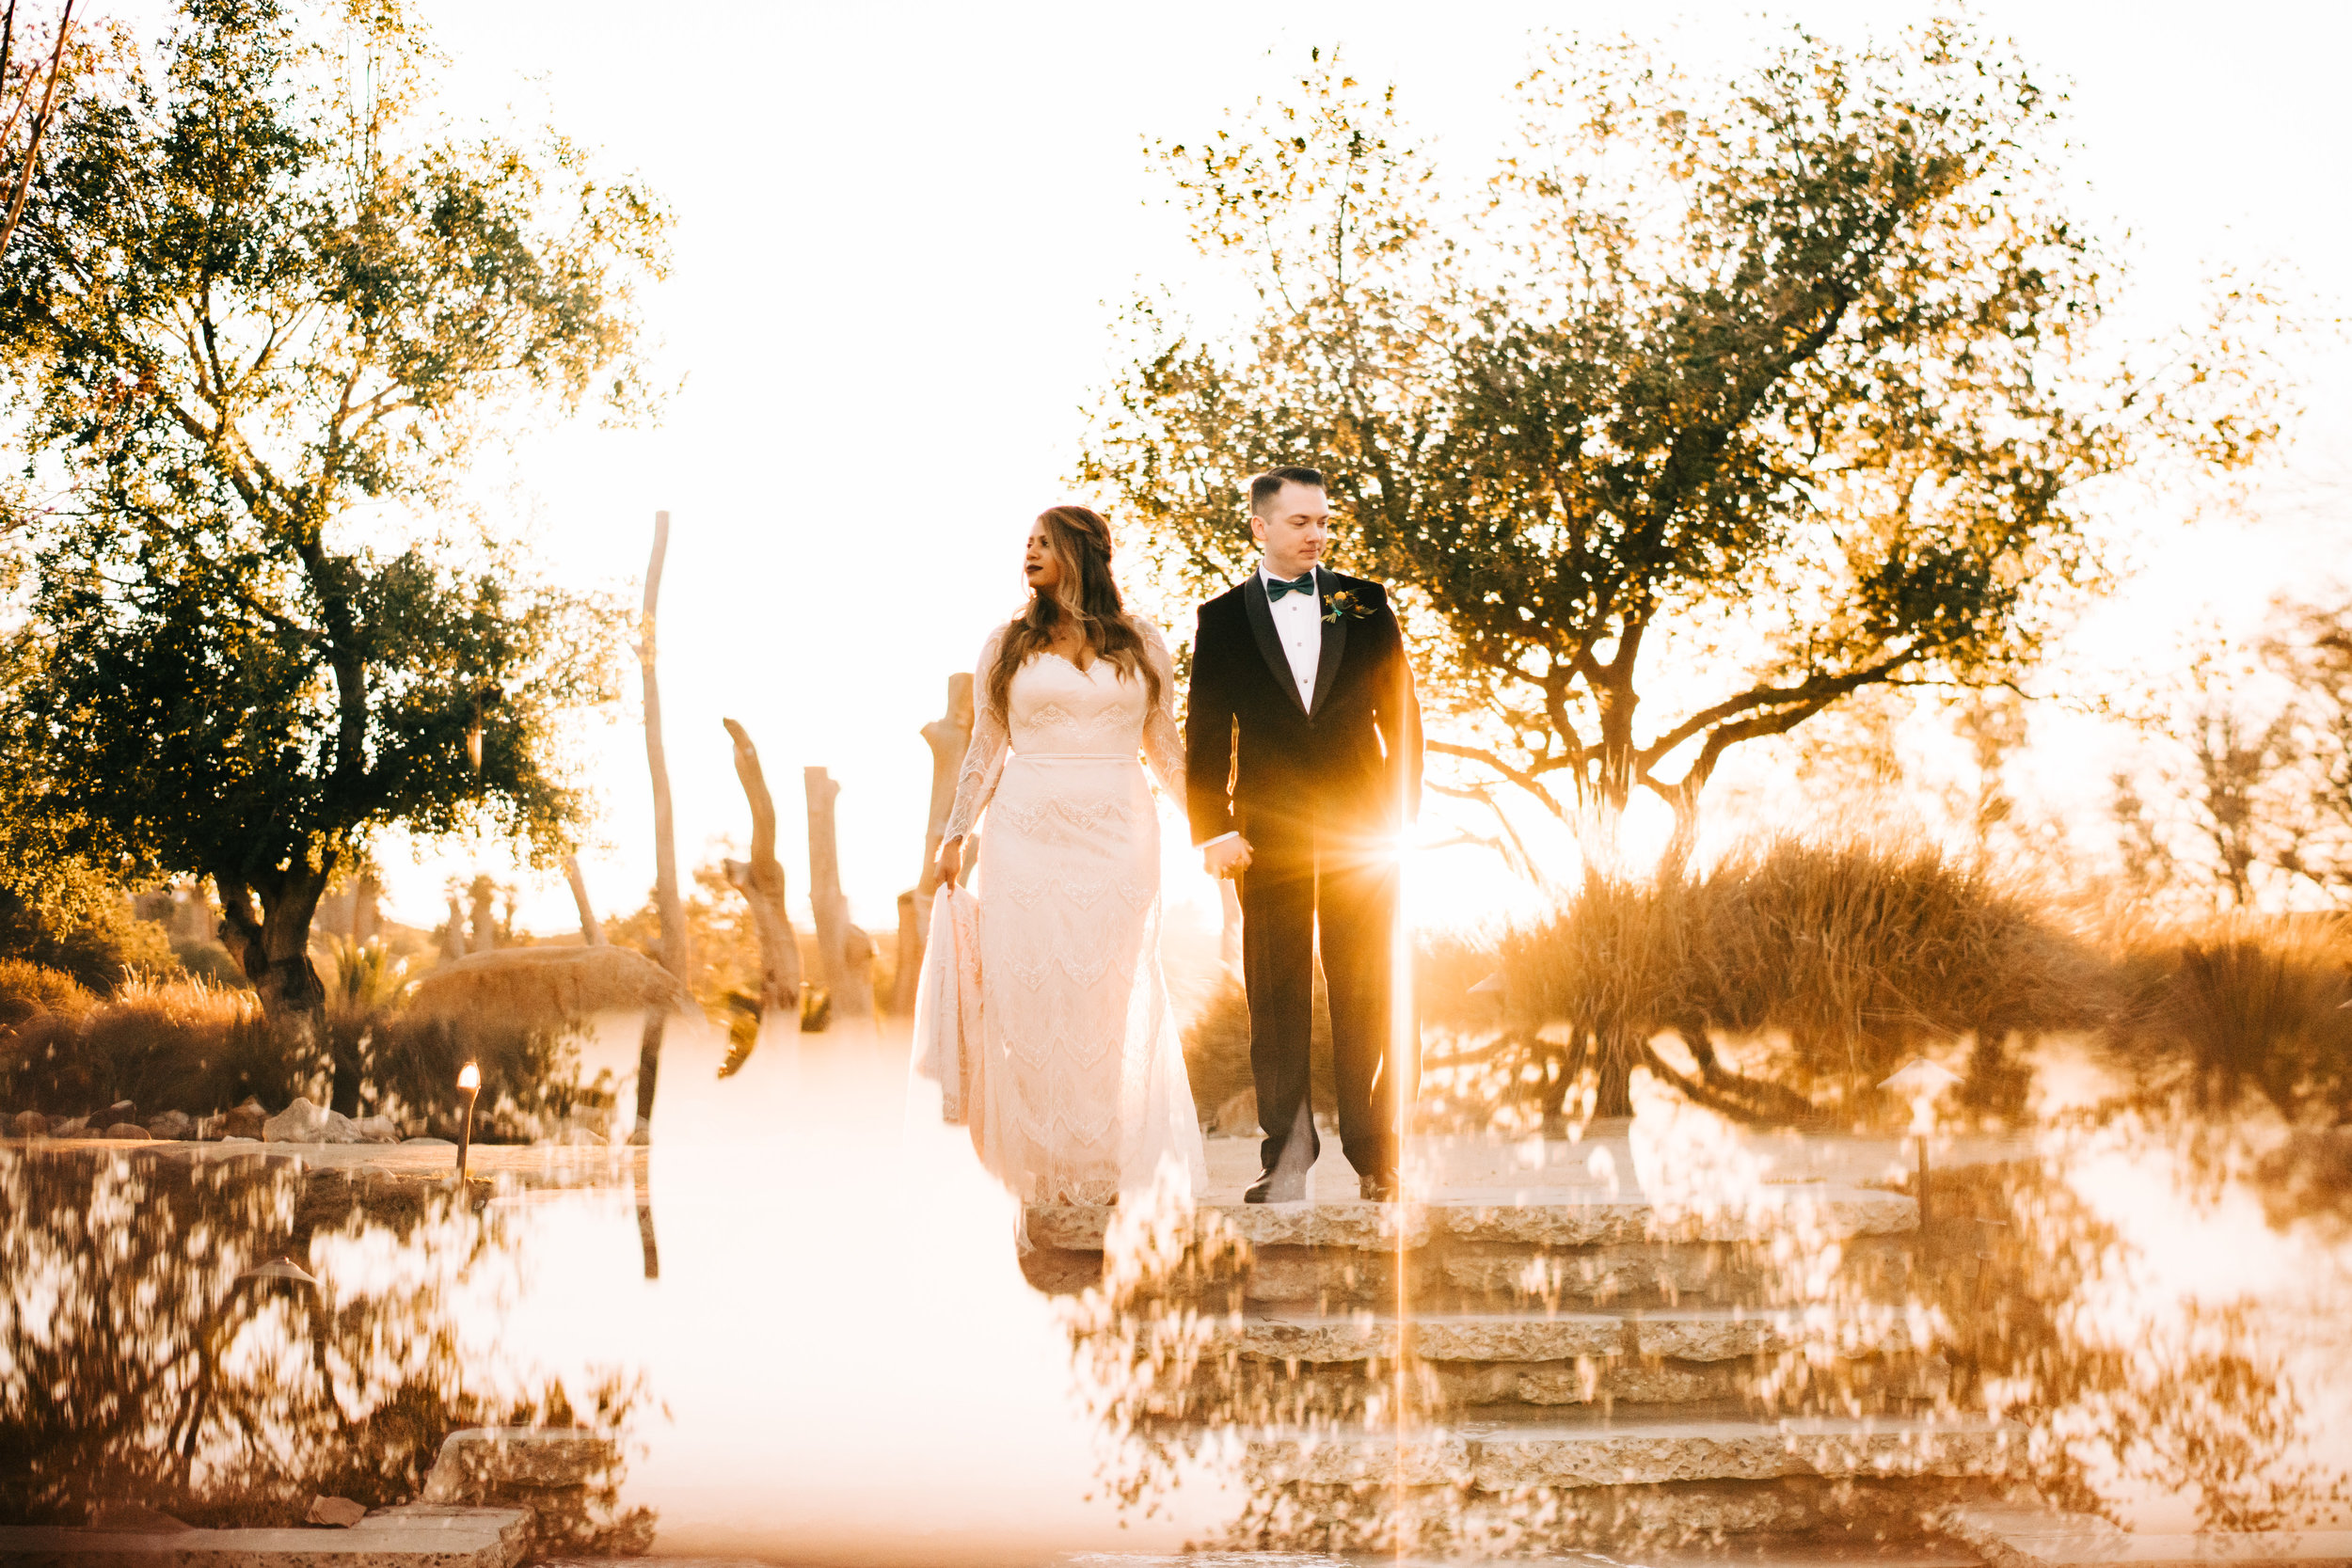 bay area nontraditional wedding photographer southern california boho wedding love light magic san francisco oakland northern california-907.jpg